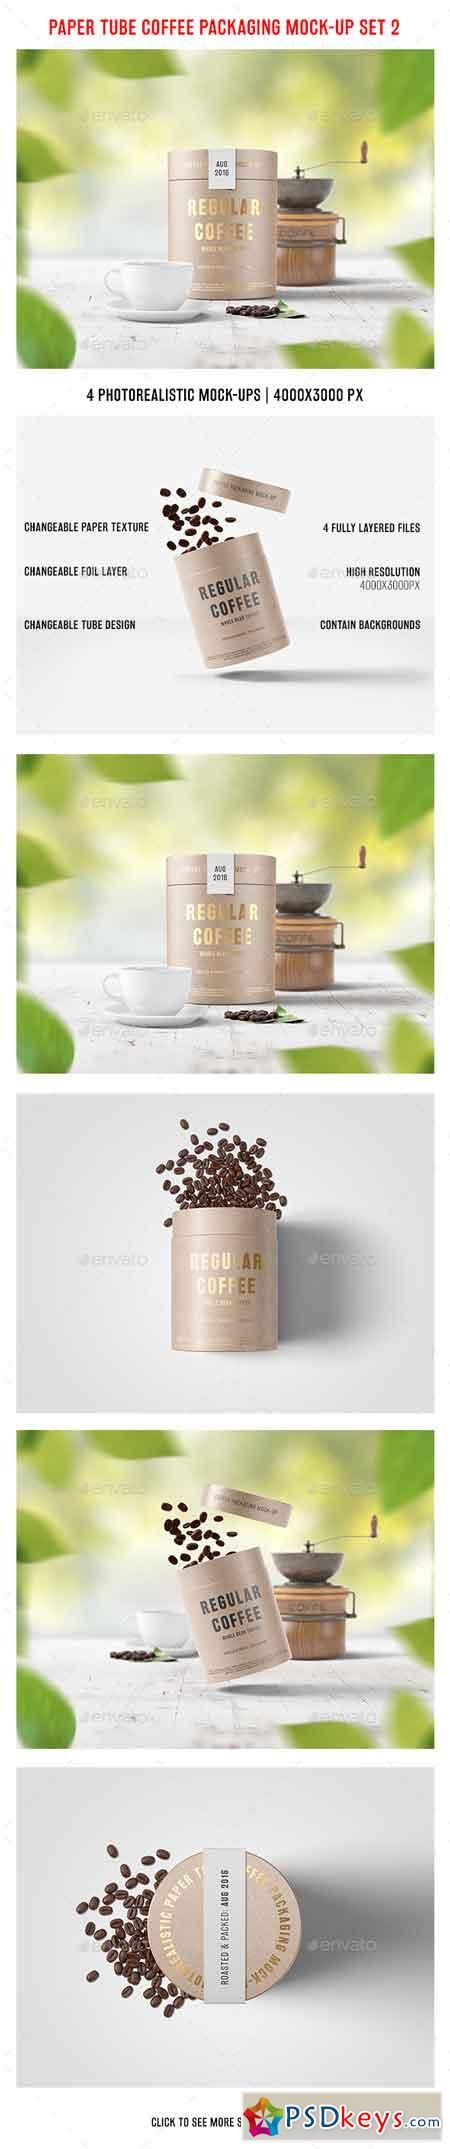 Paper Tube Coffee Packaging Mock-Up Set 2 17693579 | mockup